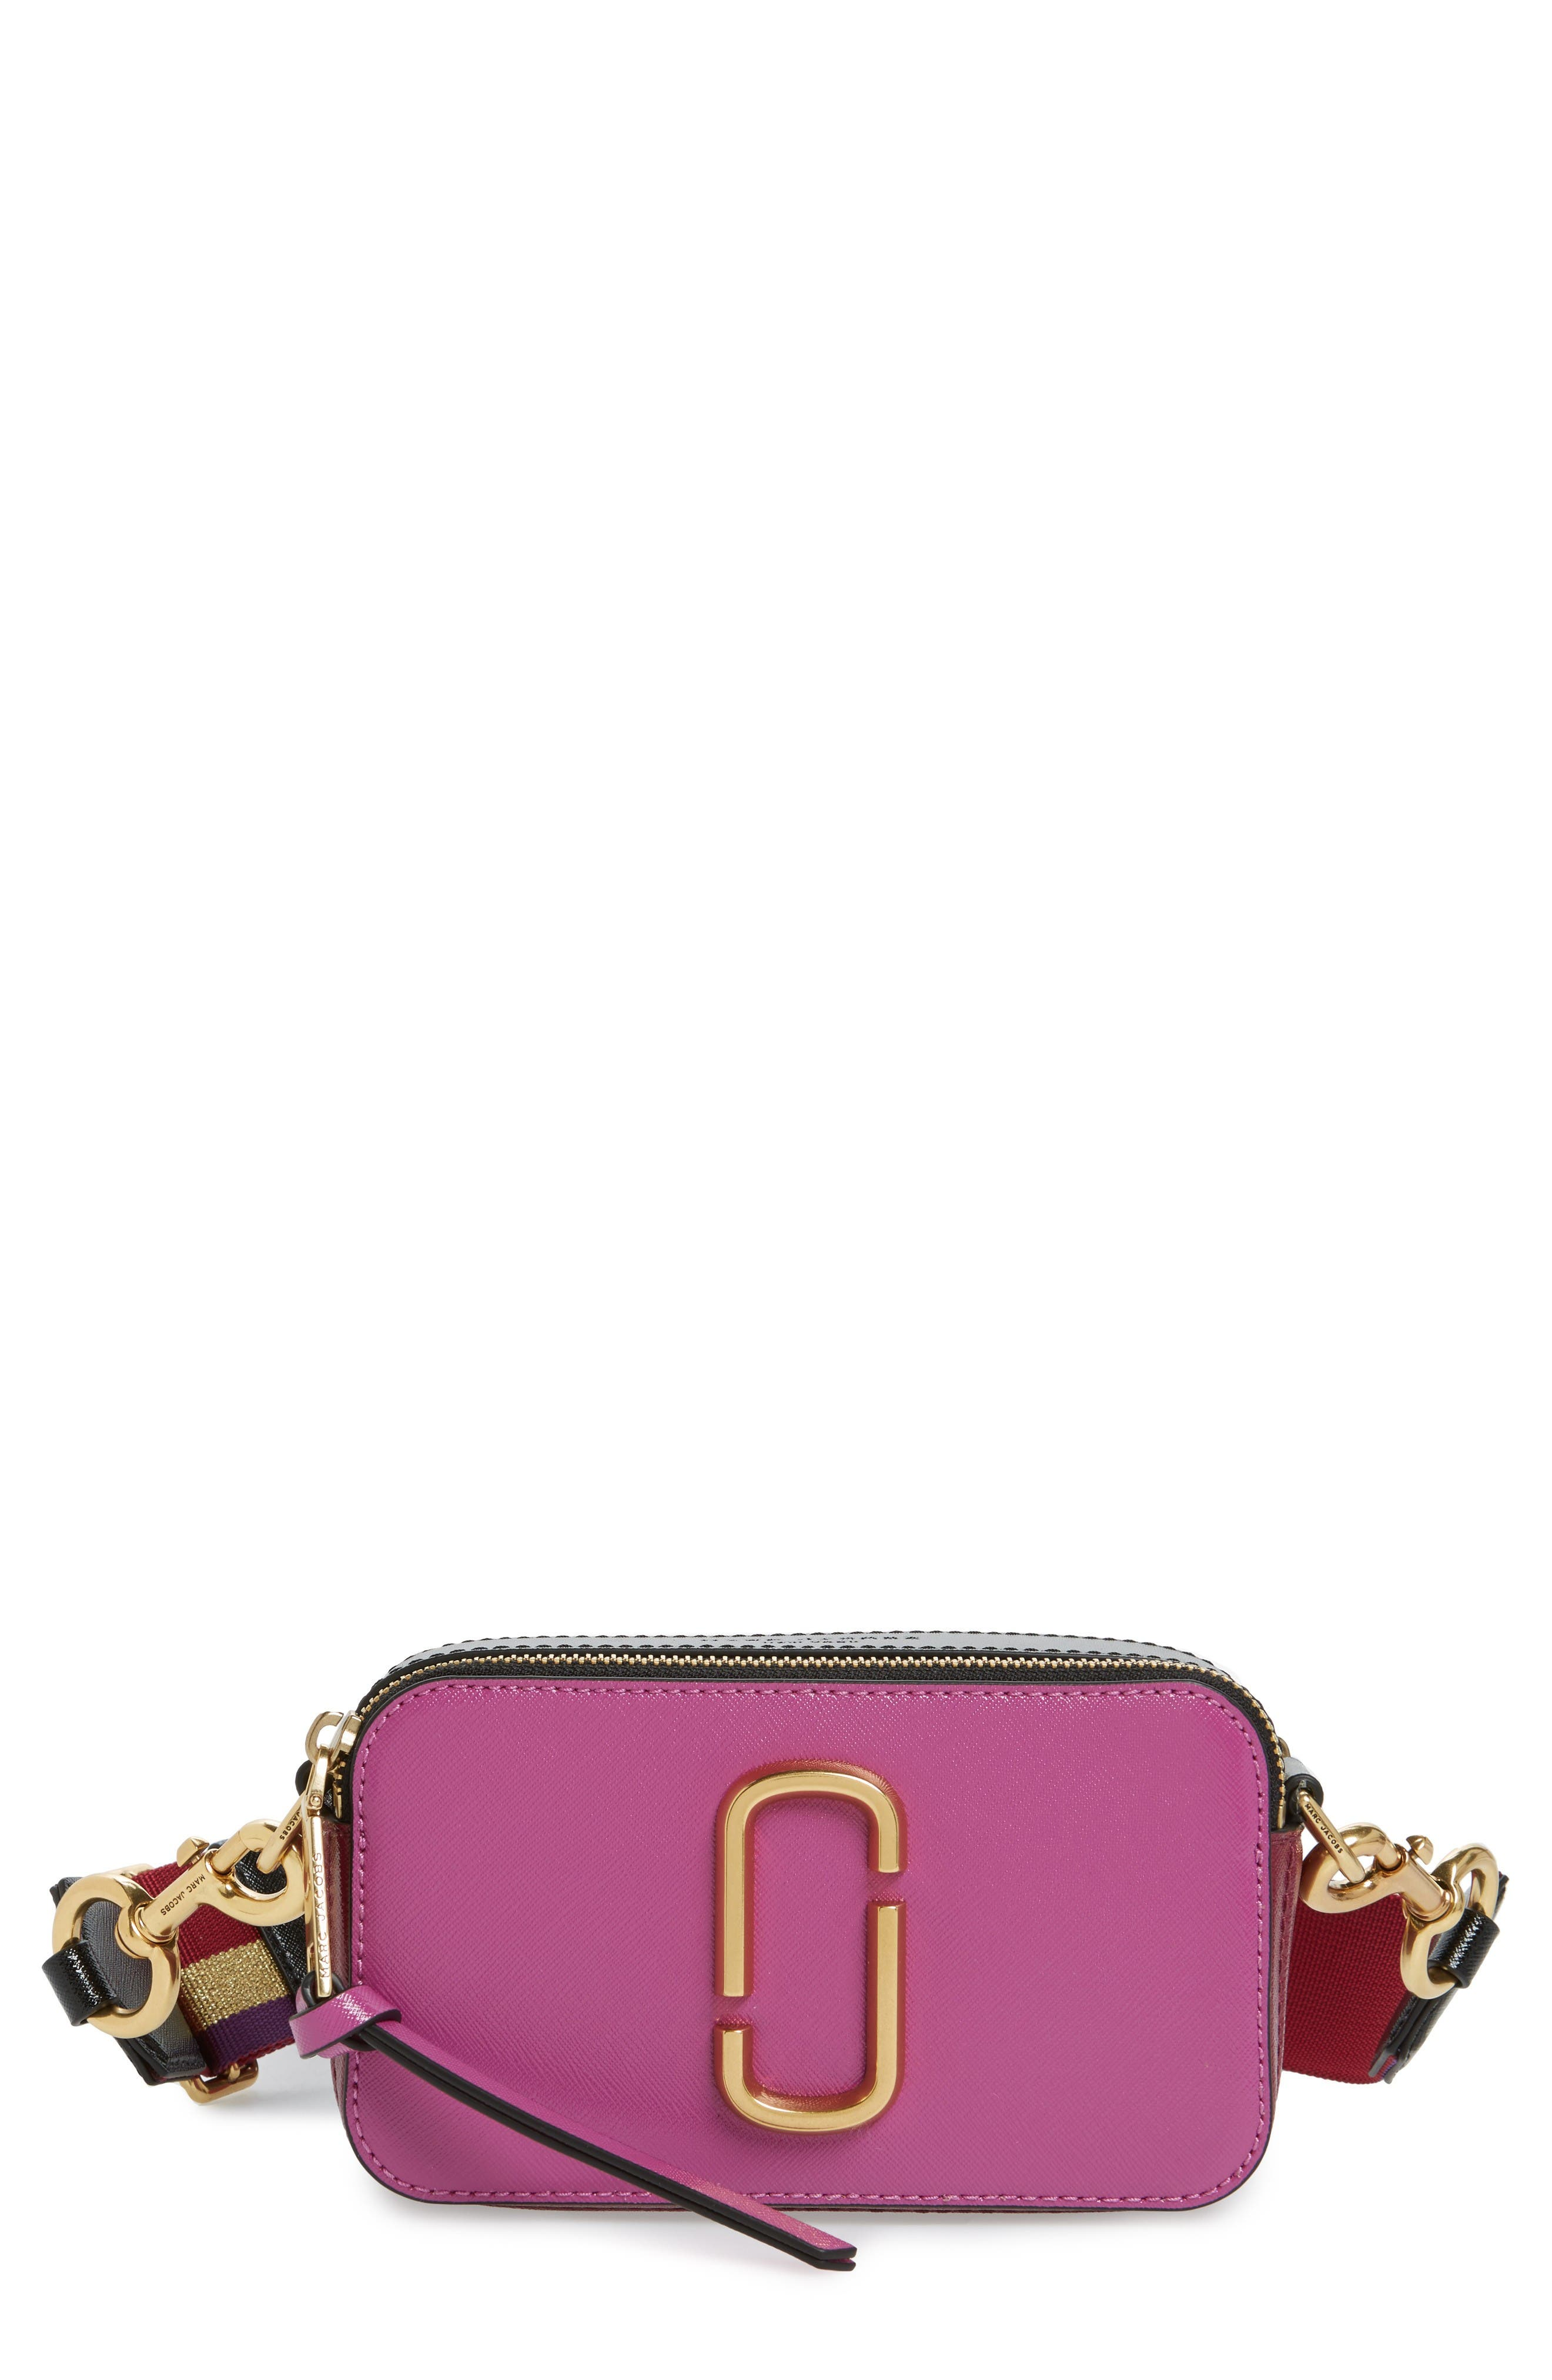 Alternate Image 1 Selected - MARC JACOBS Snapshot Crossbody Bag